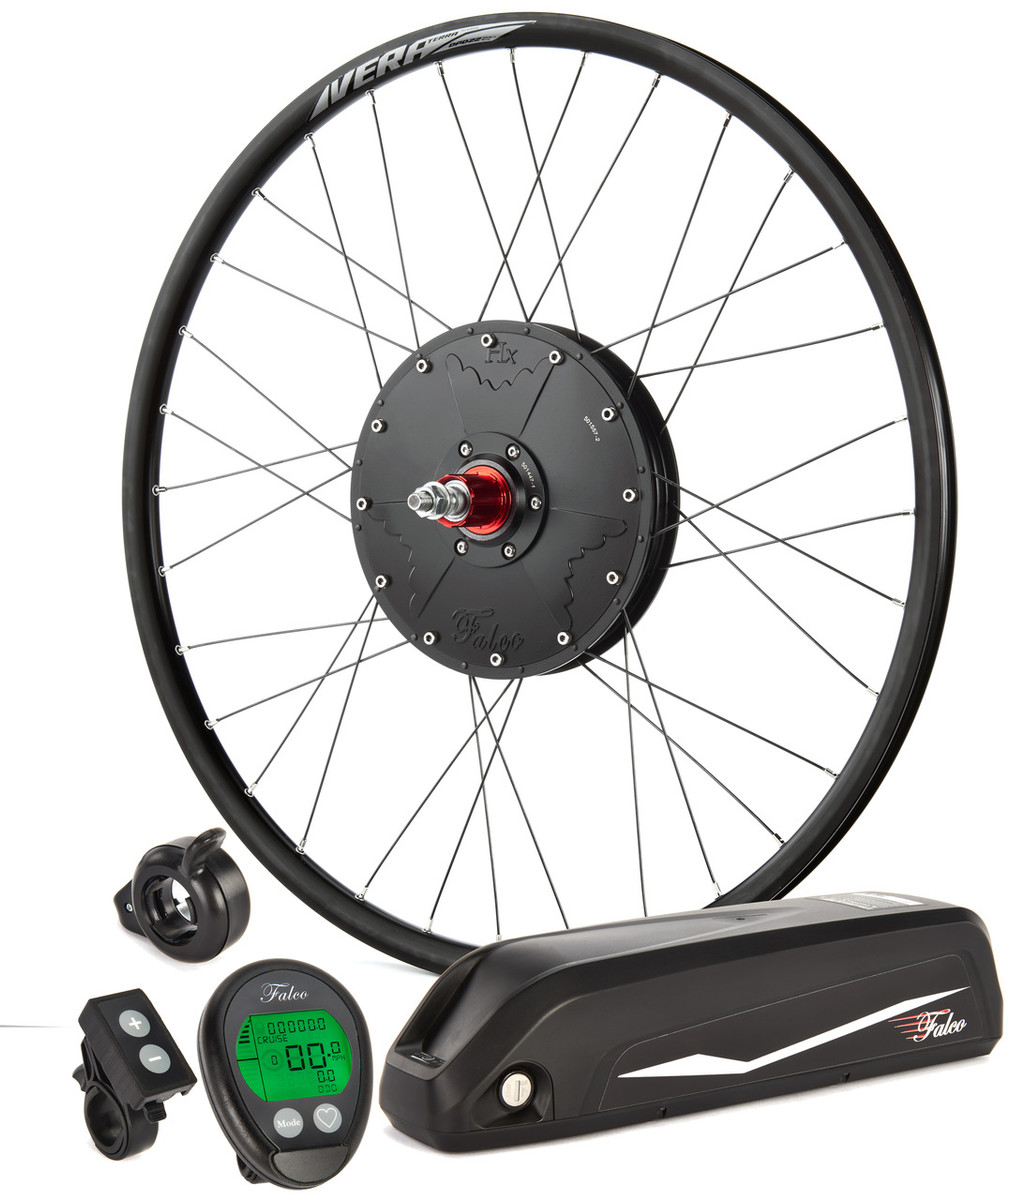 f7.7 750W/672Wh eBike System from Falco